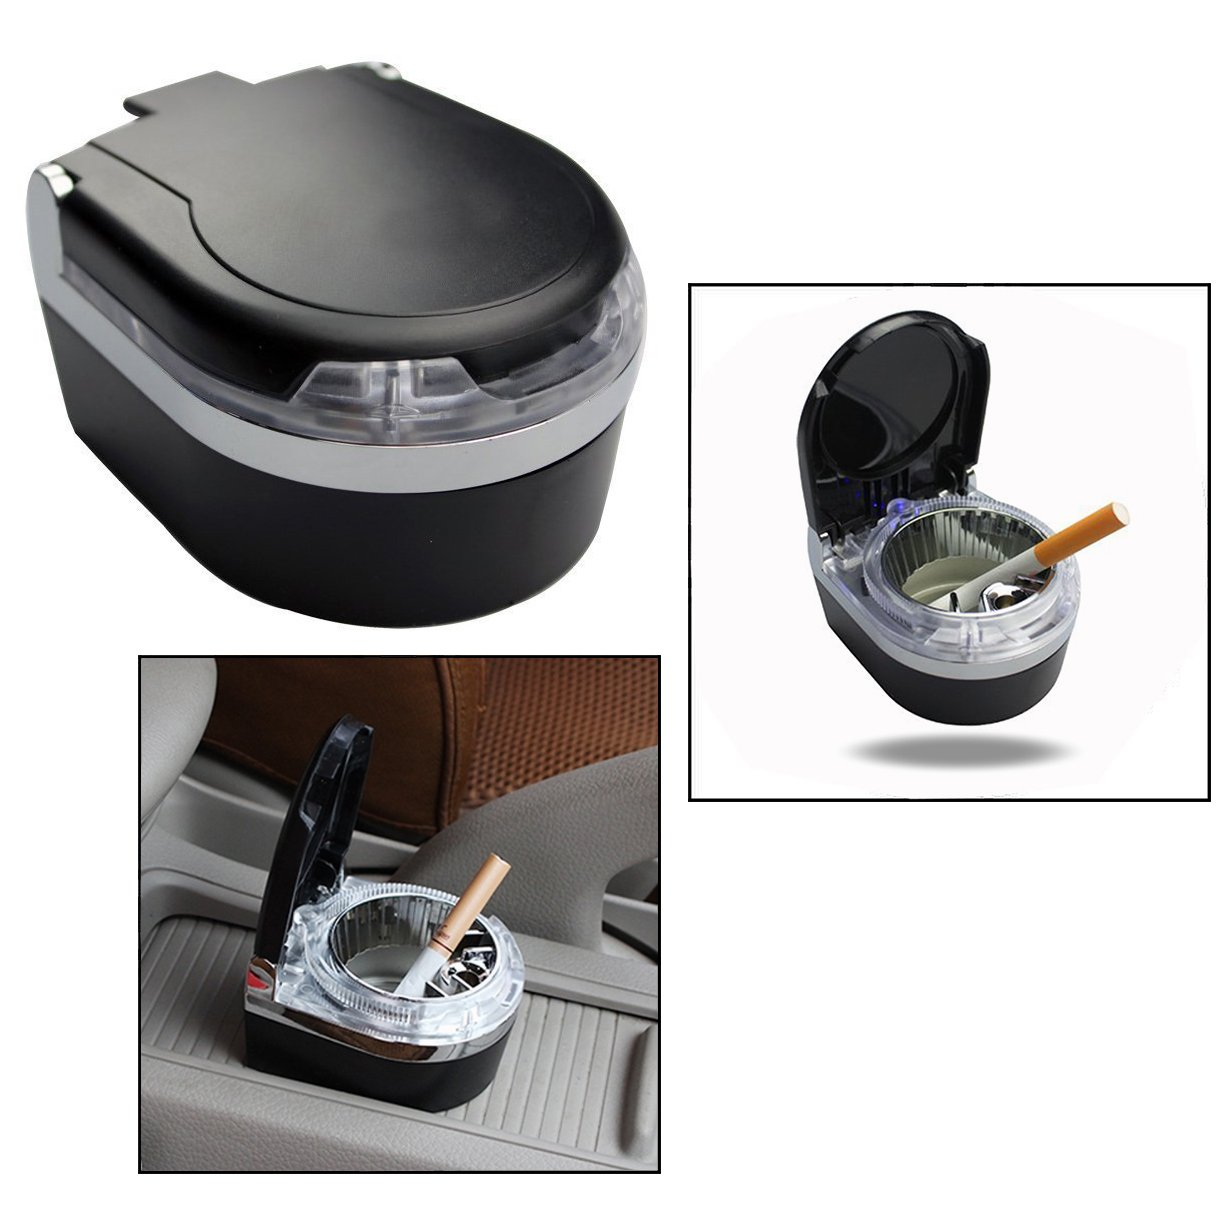 Office and Travel Smokeless Car Ashtray for Car Home OFKP LED Portable Car Ashtray